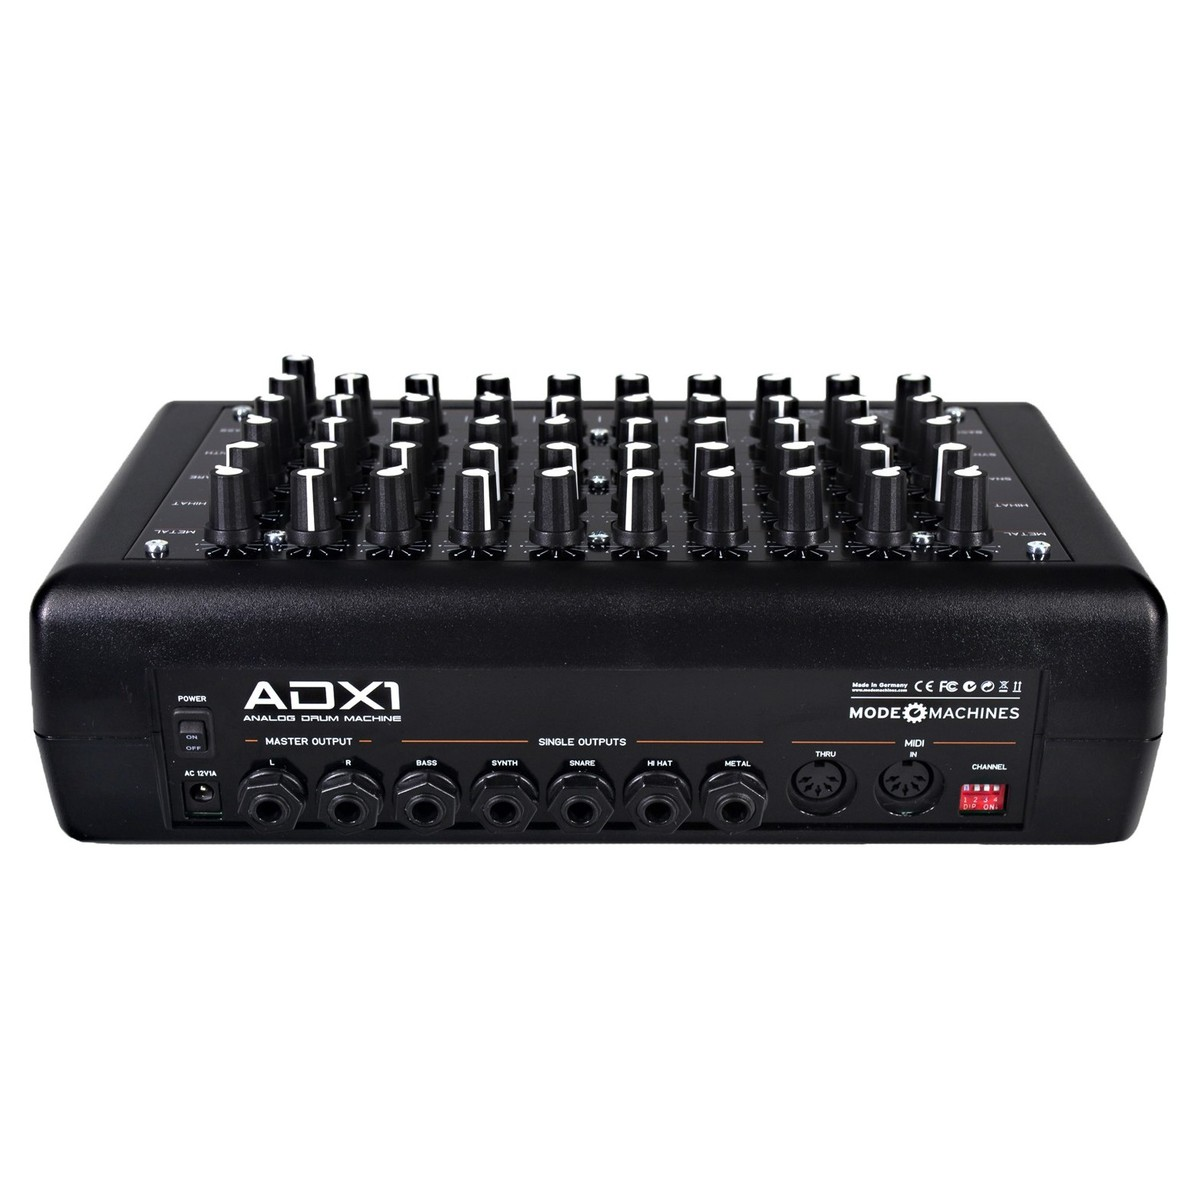 mode machines adx 1 analog drum machine at gear4music. Black Bedroom Furniture Sets. Home Design Ideas